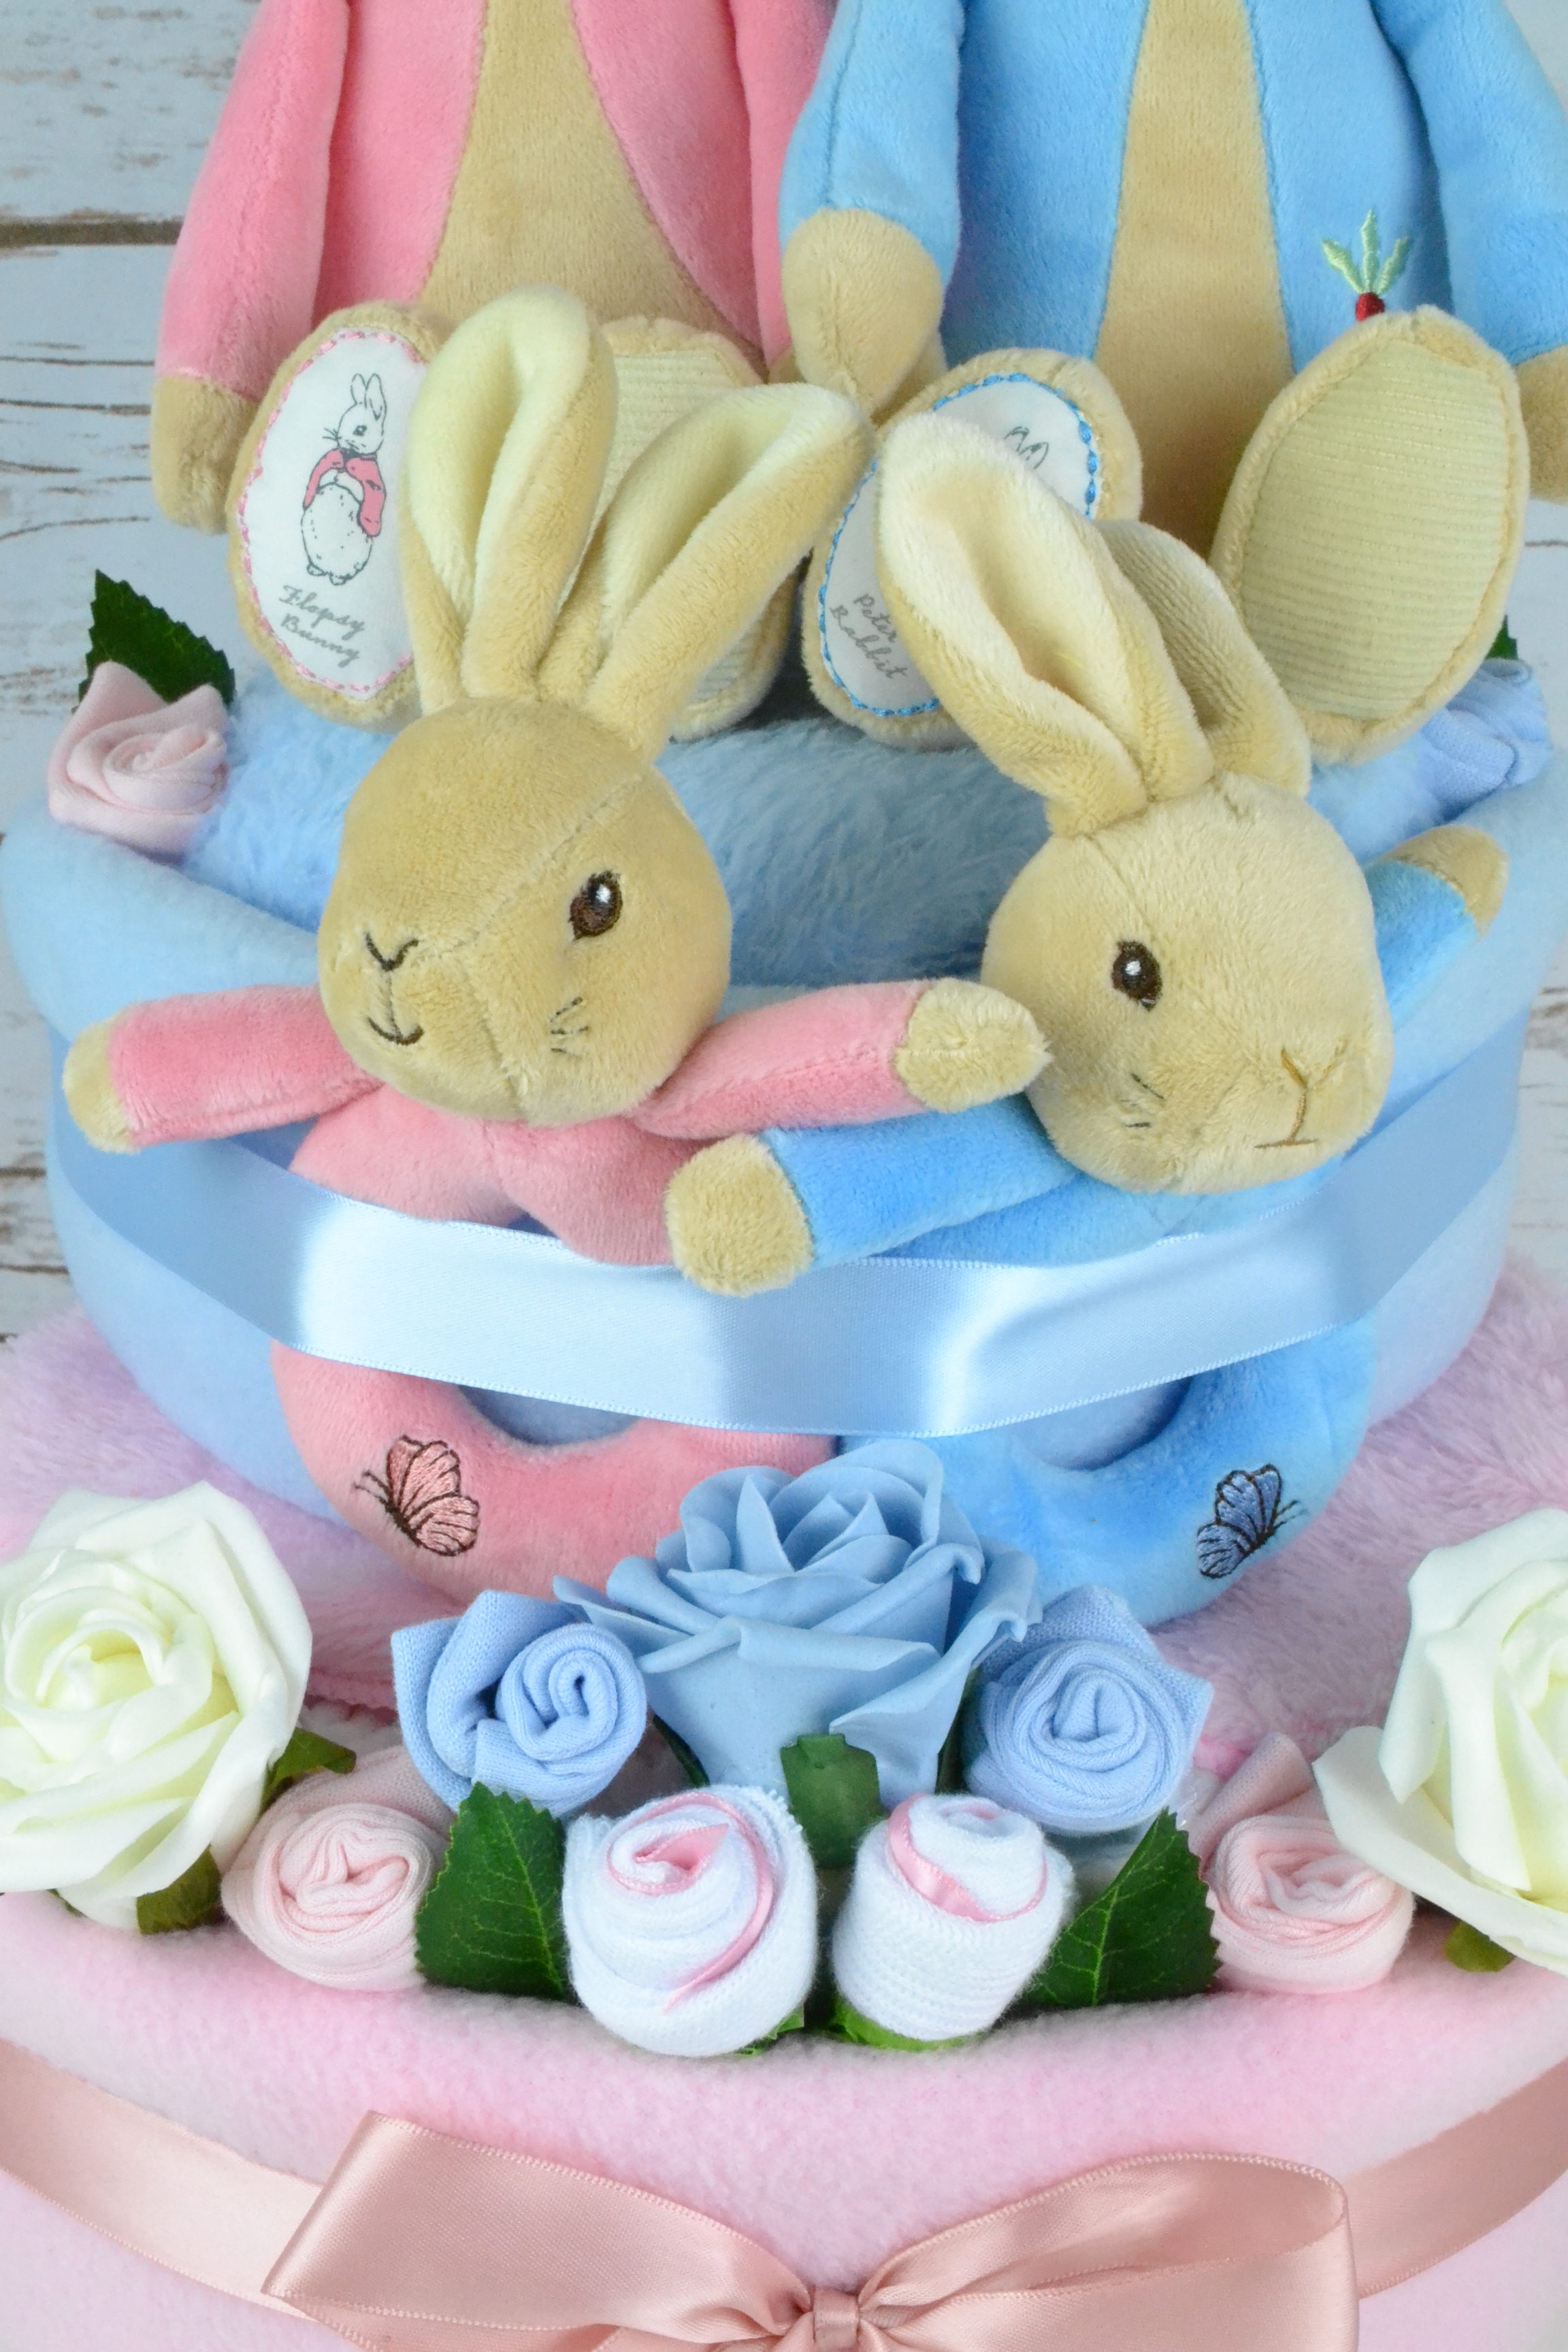 Peter Rabbit & Flopsy Bunny Nappy Cake